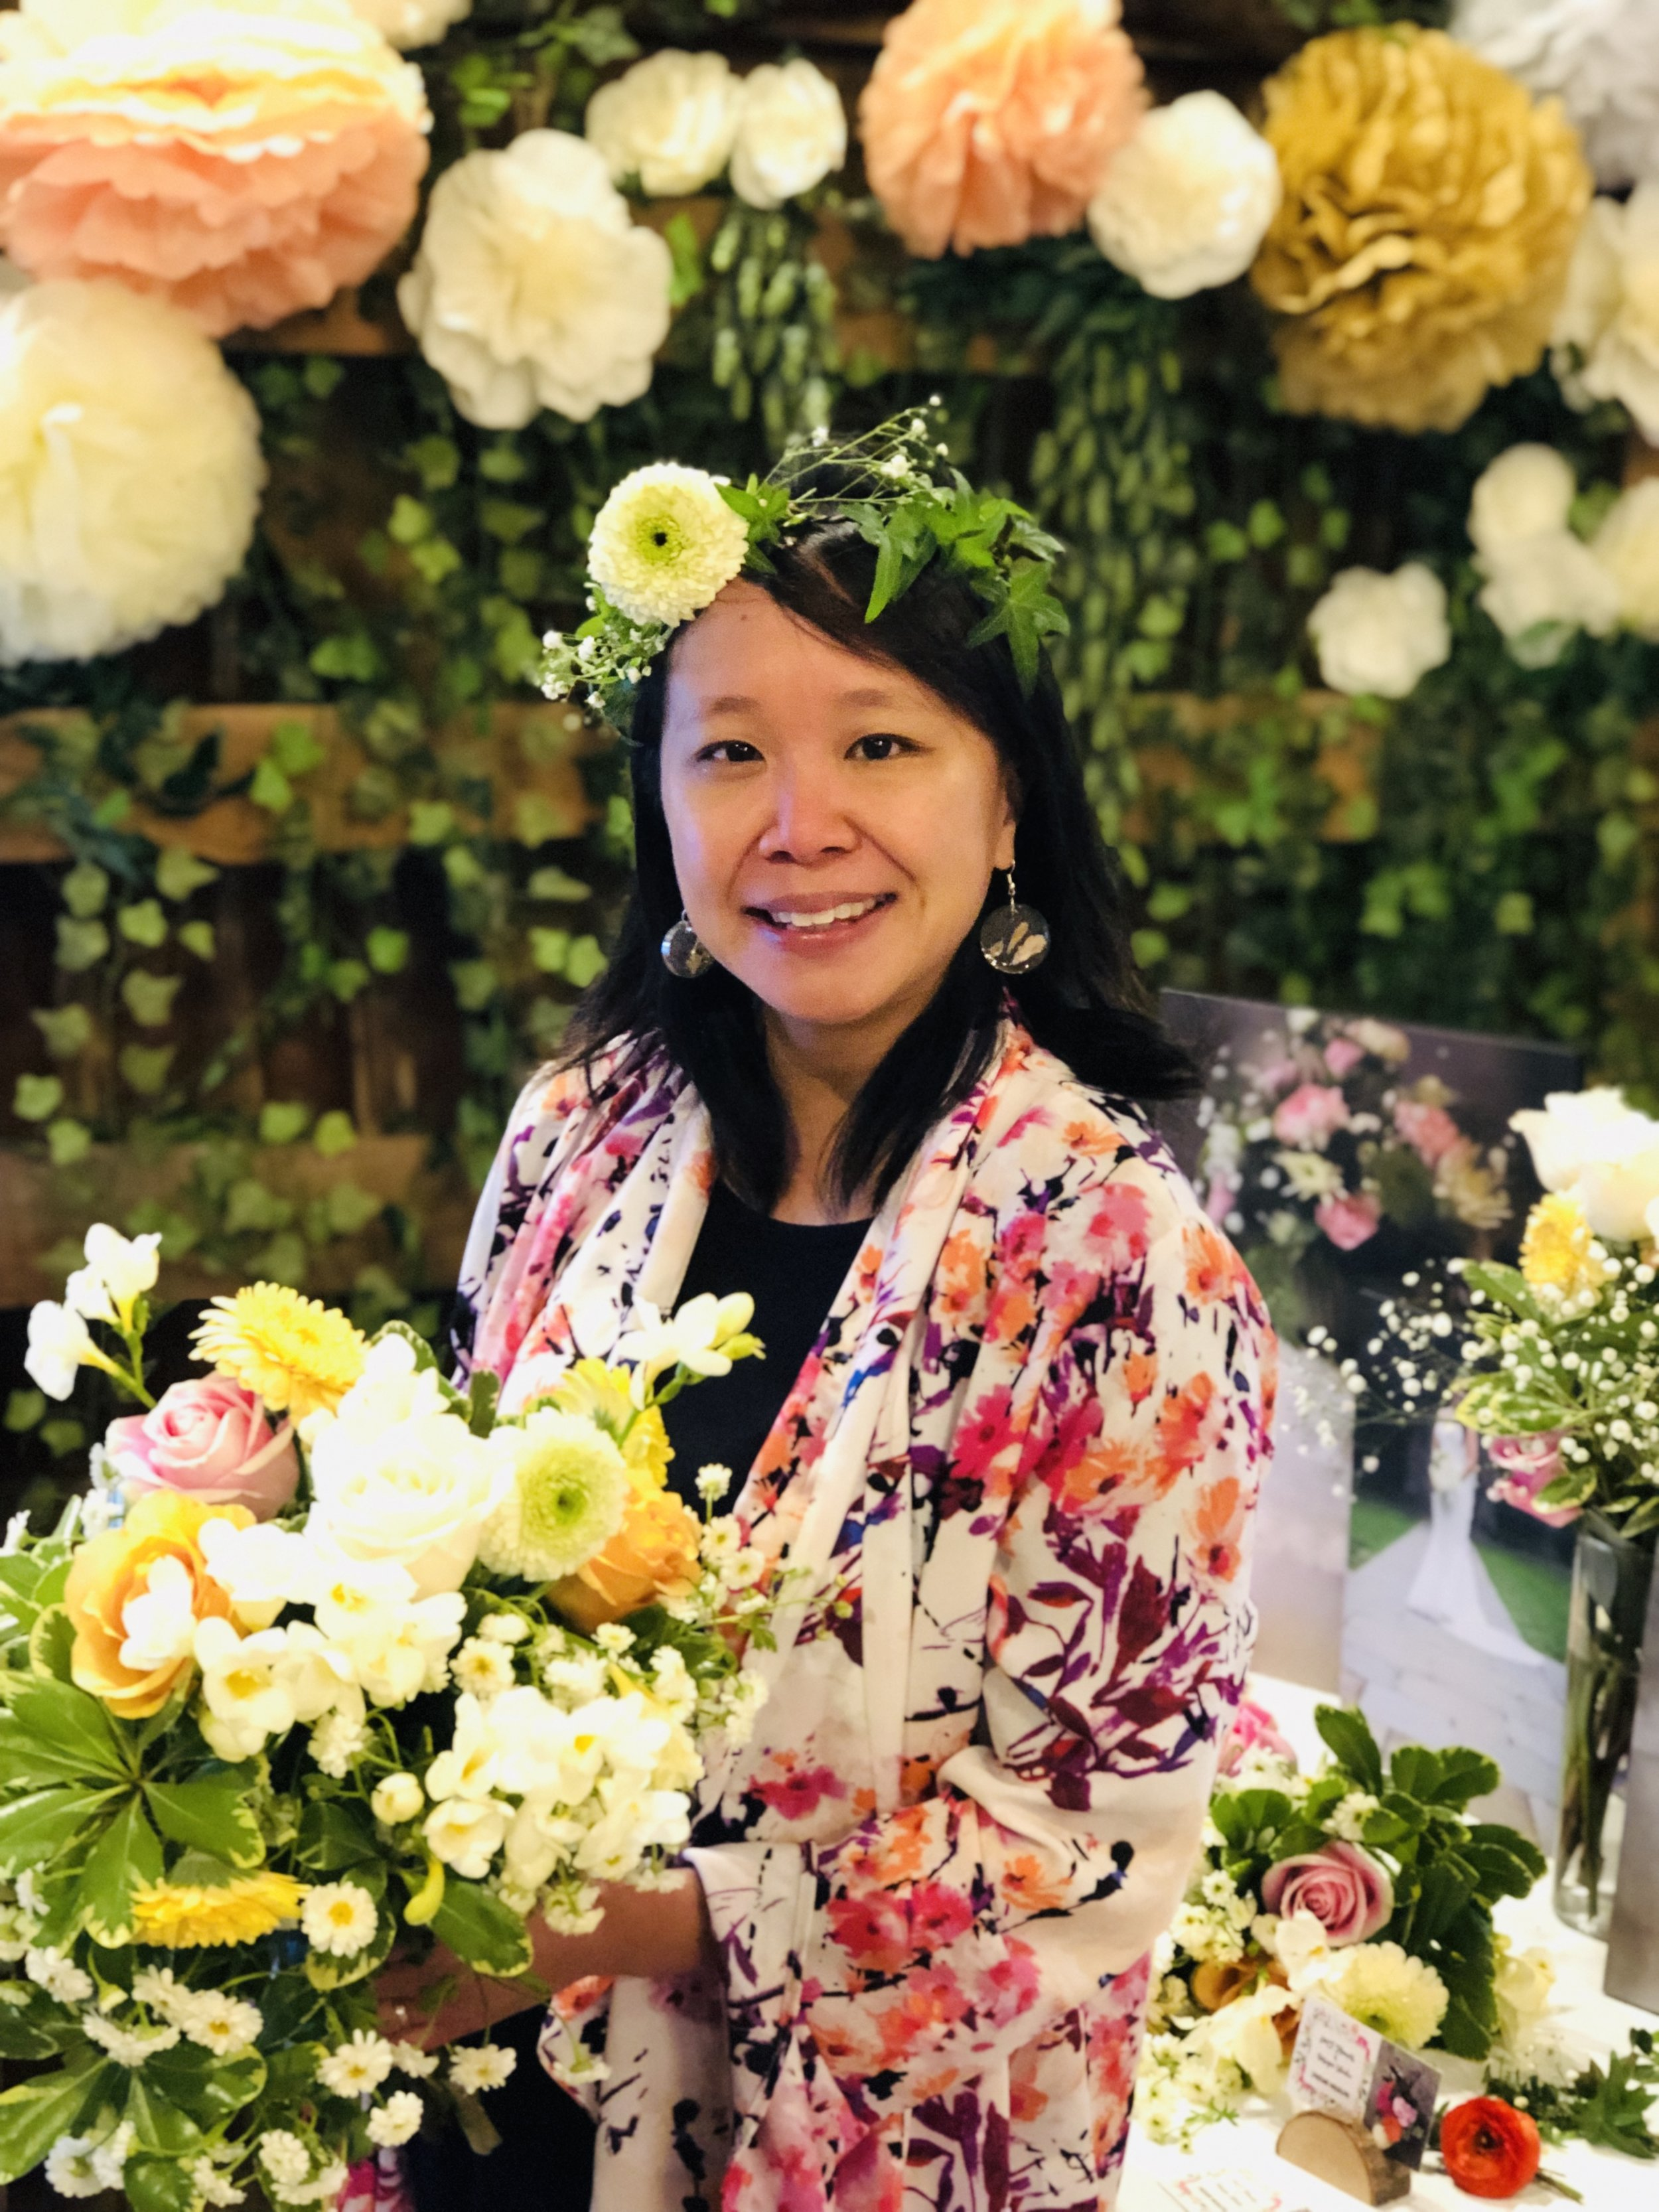 Elaine Lok, Owner & Designer, LMF Flowers & Design Studio - Elaine found her true passion through floral design after studying photography at the College for Creative Studies. Like, any artistic medium, Elaine finds creating arrangements with fresh flowers and verdant foliage, a wonderful way to engage all five of your senses!